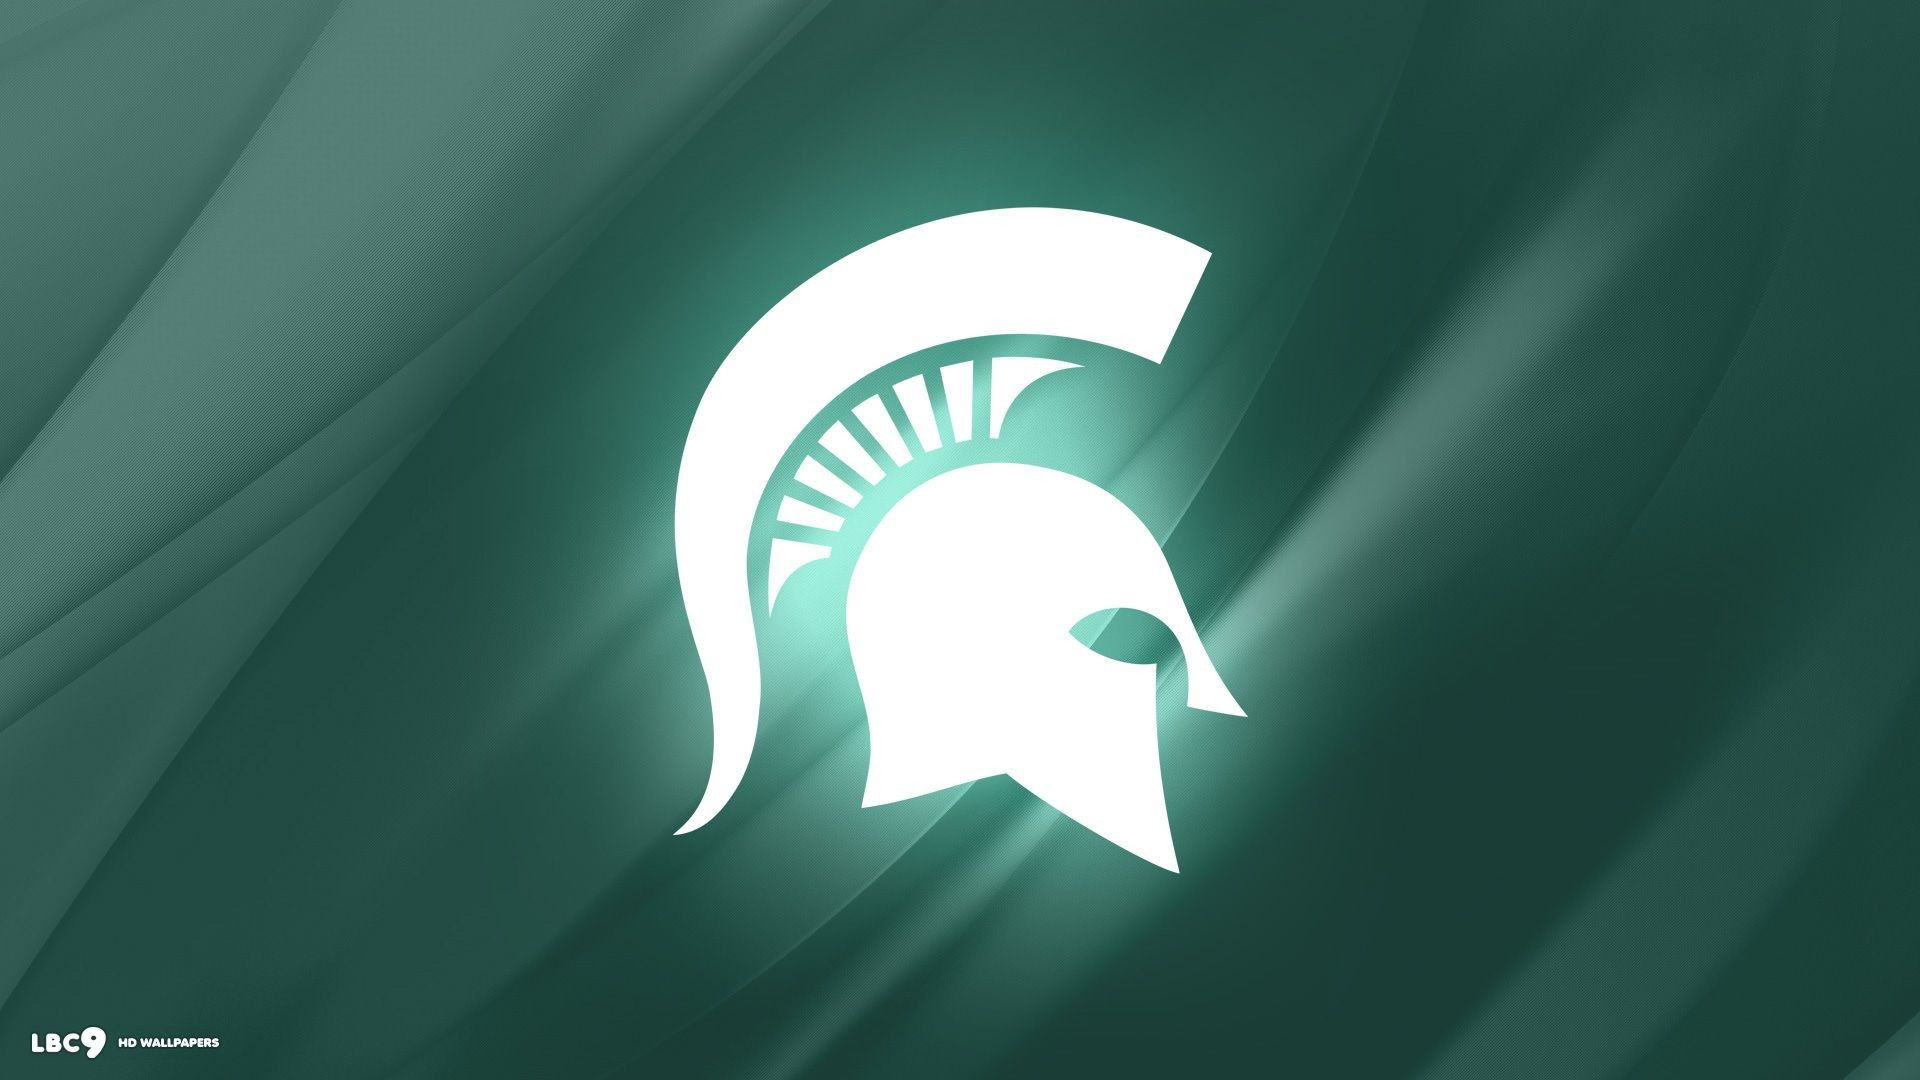 59 Msu Spartan Wallpapers on WallpaperPlay 1920x1080